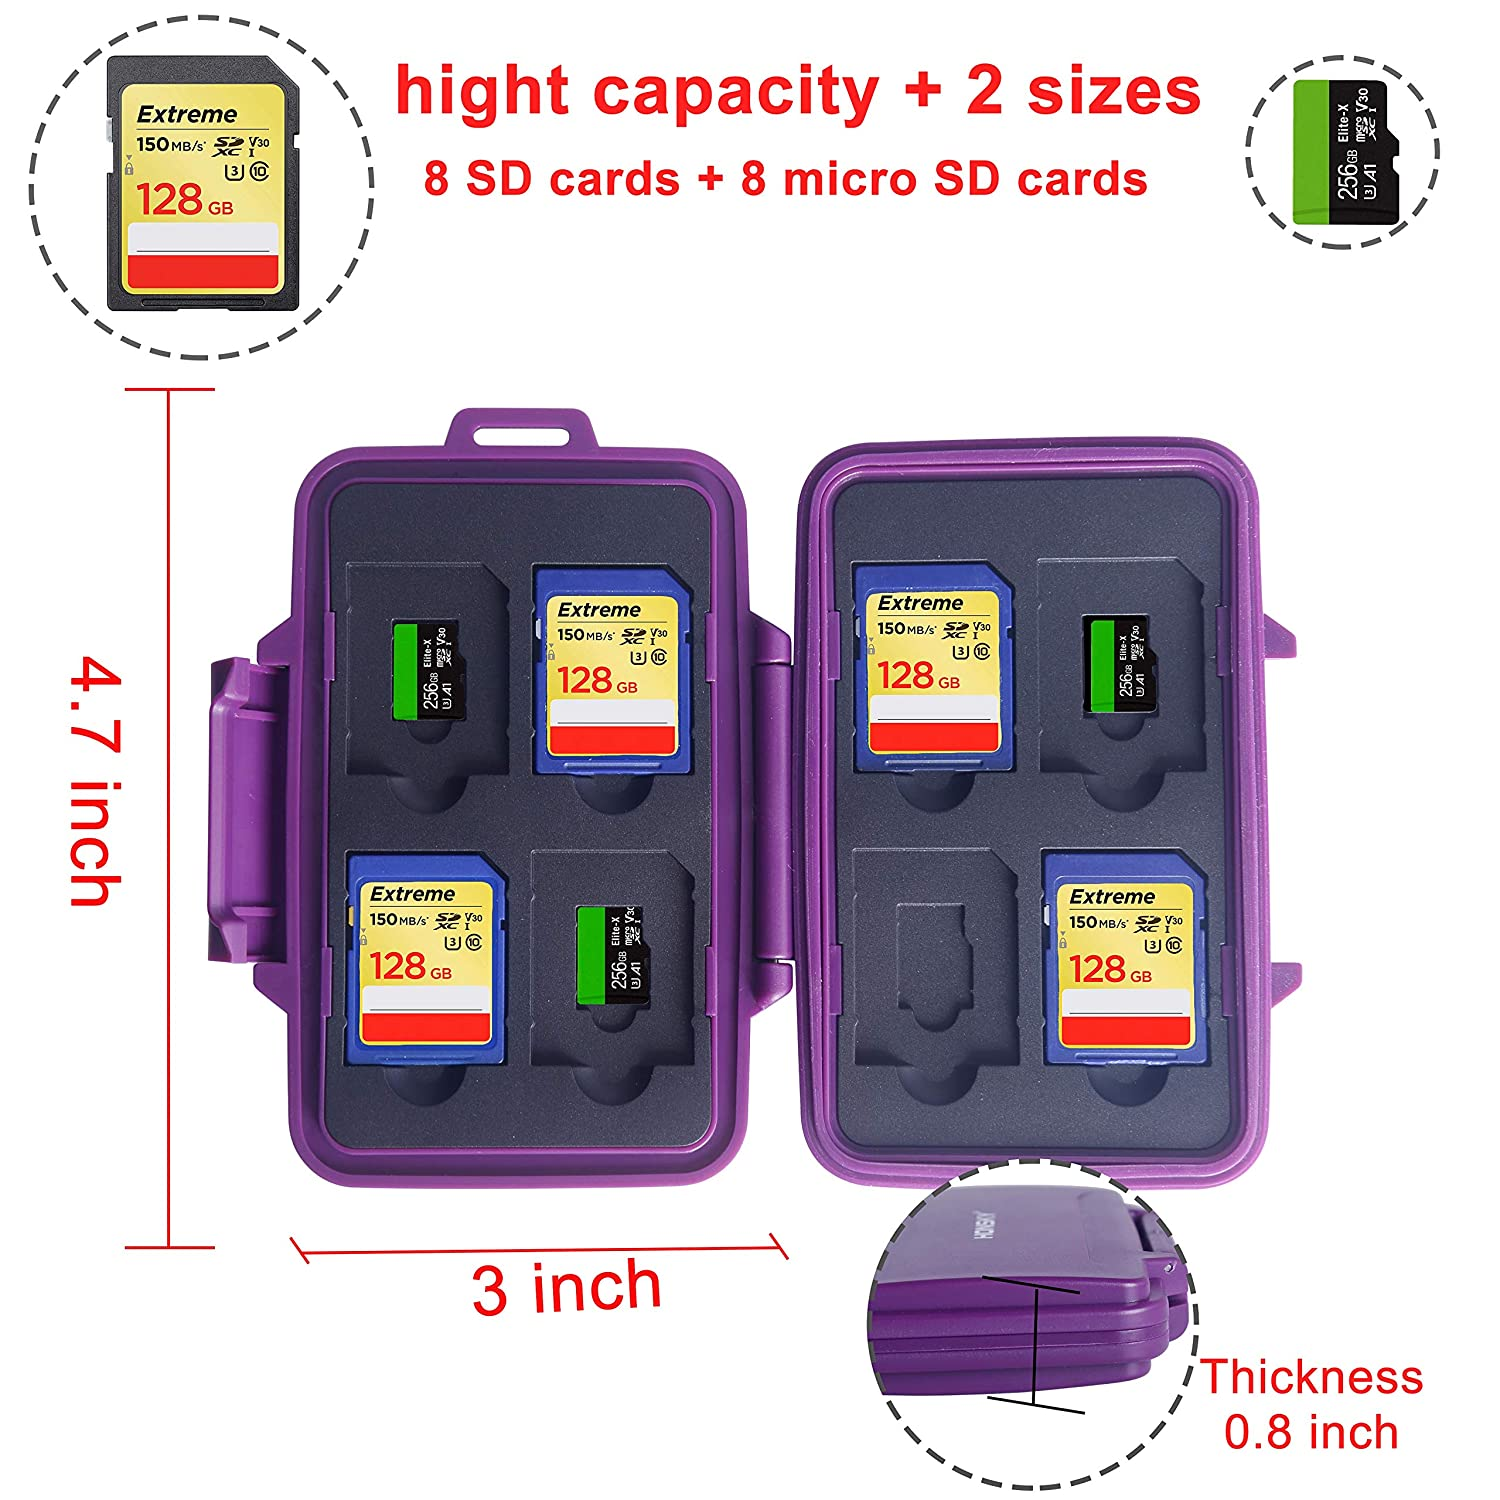 SDHC SDXC Honsky Waterproof Memory Card Holder Case for SD Cards Blue SD Card Holder Micro SD Cards